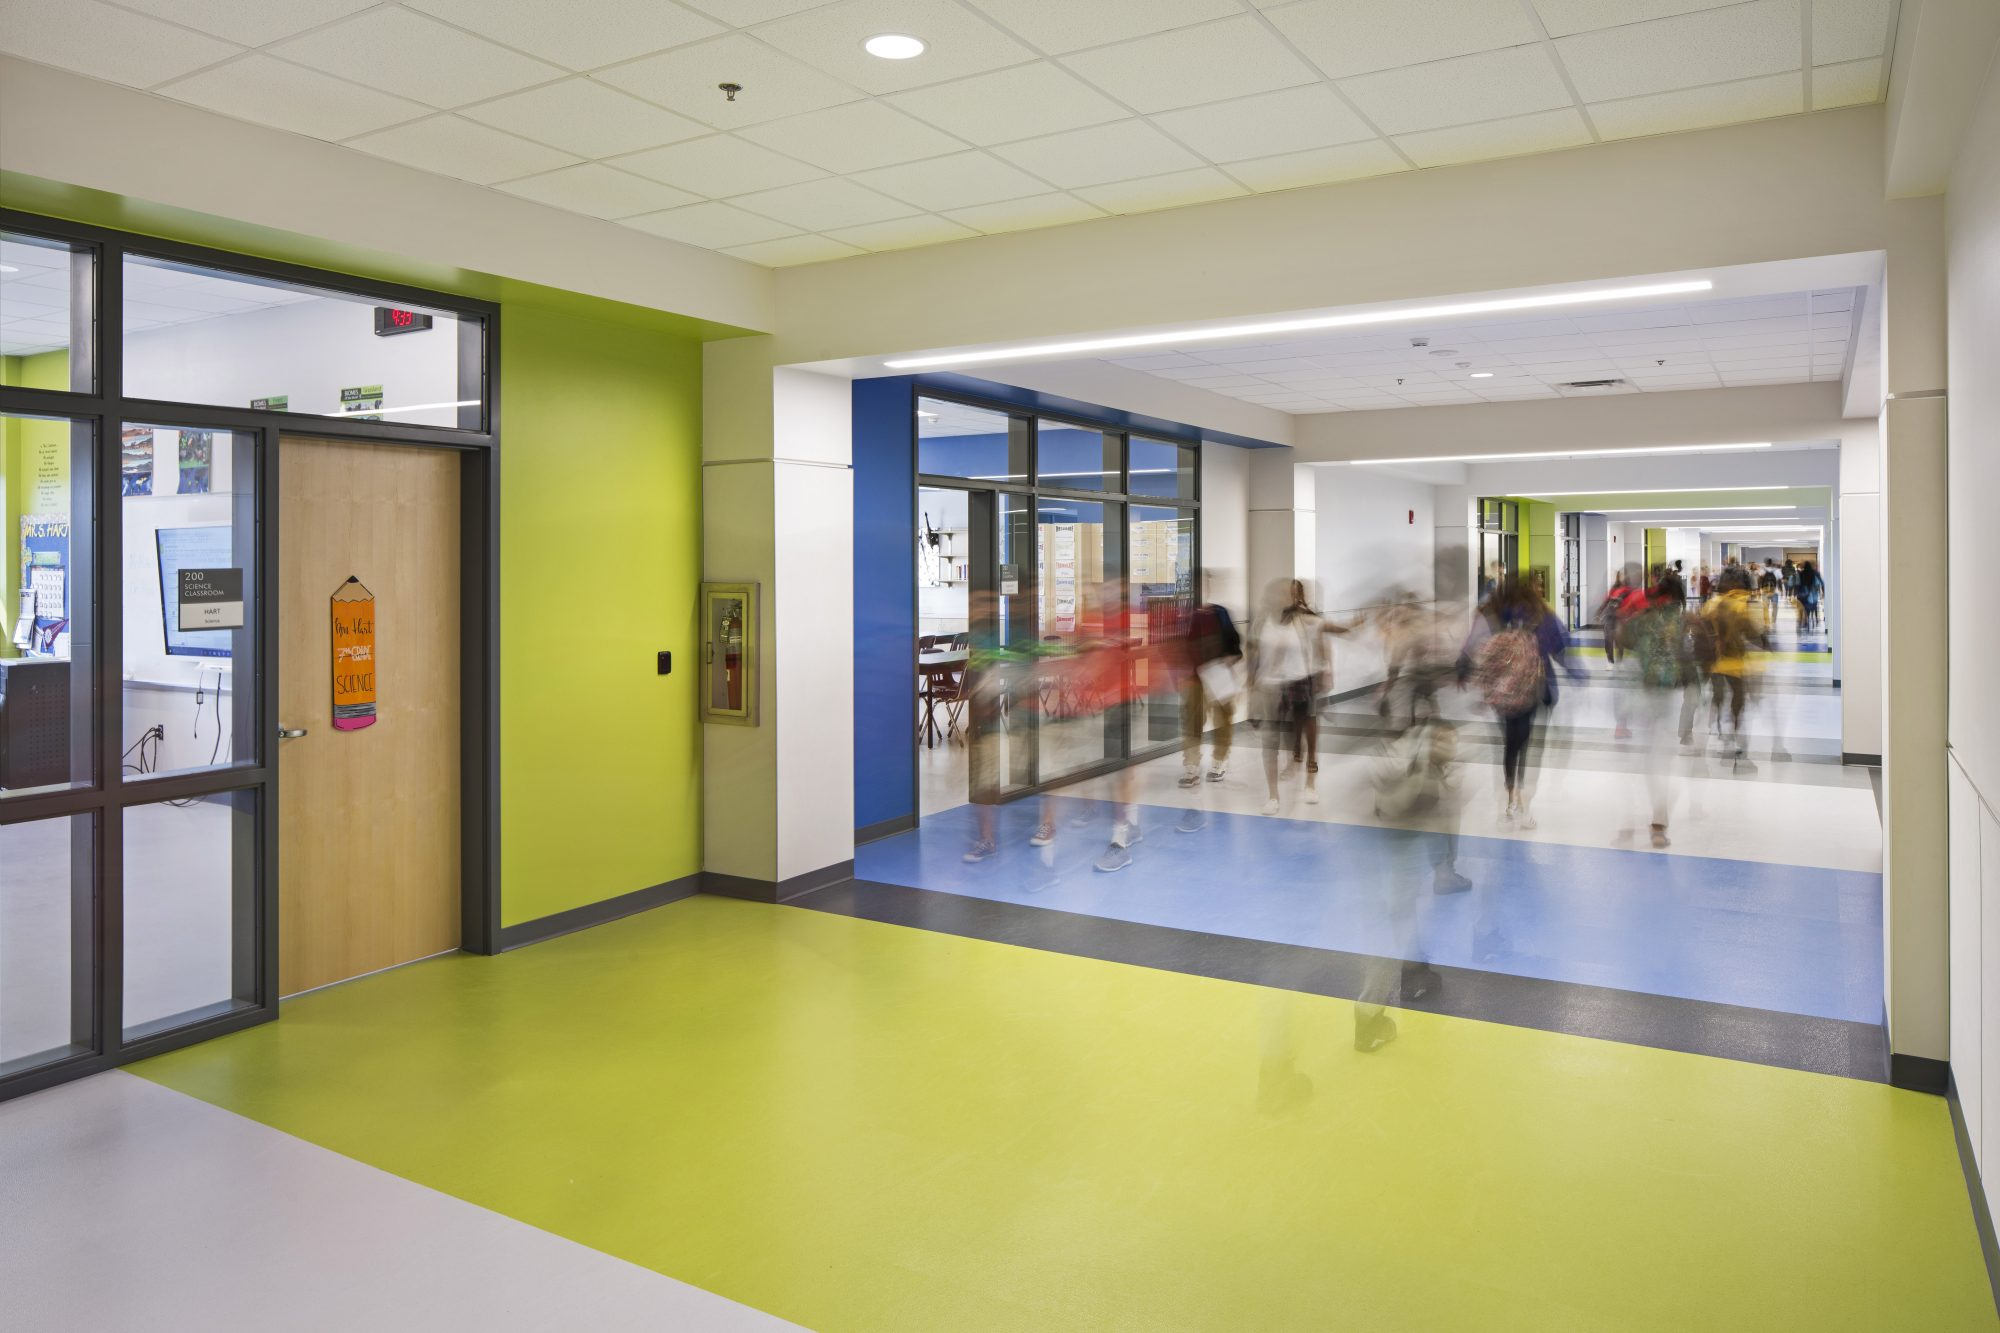 Pinnacle view middle school little rock school district - How long is interior design school ...